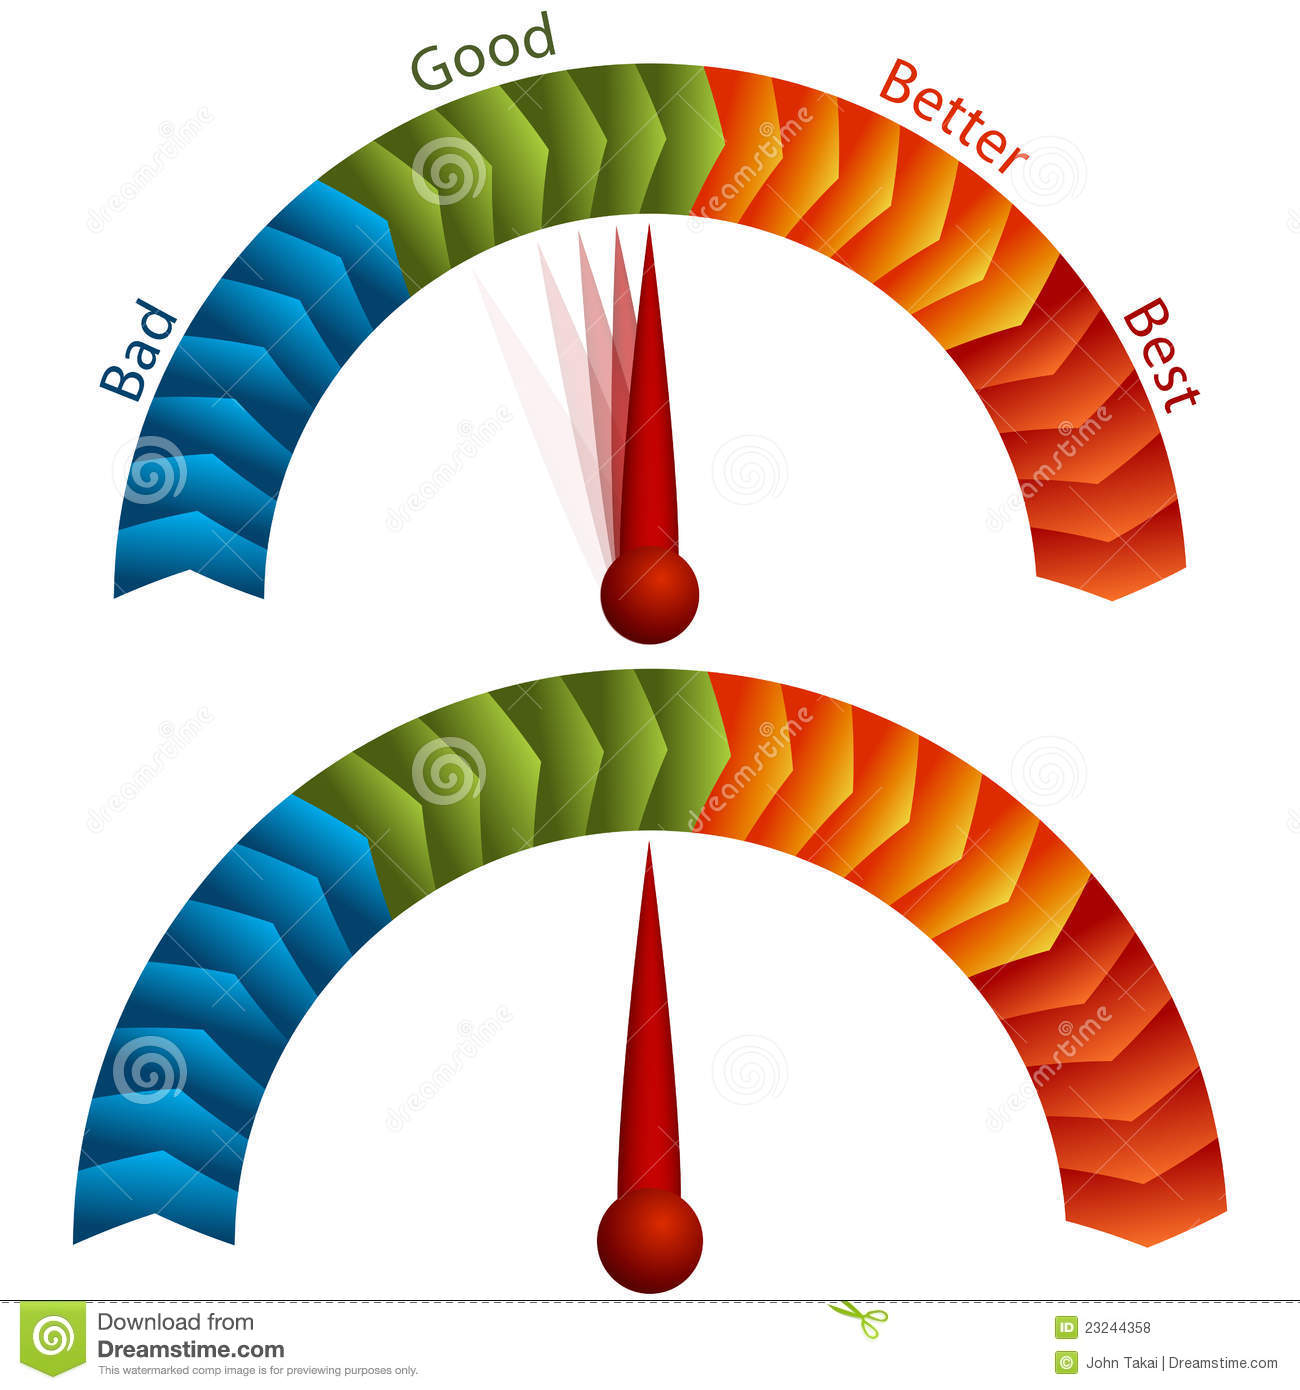 Good Bad Better Best Rating Meter Royalty Free Stock